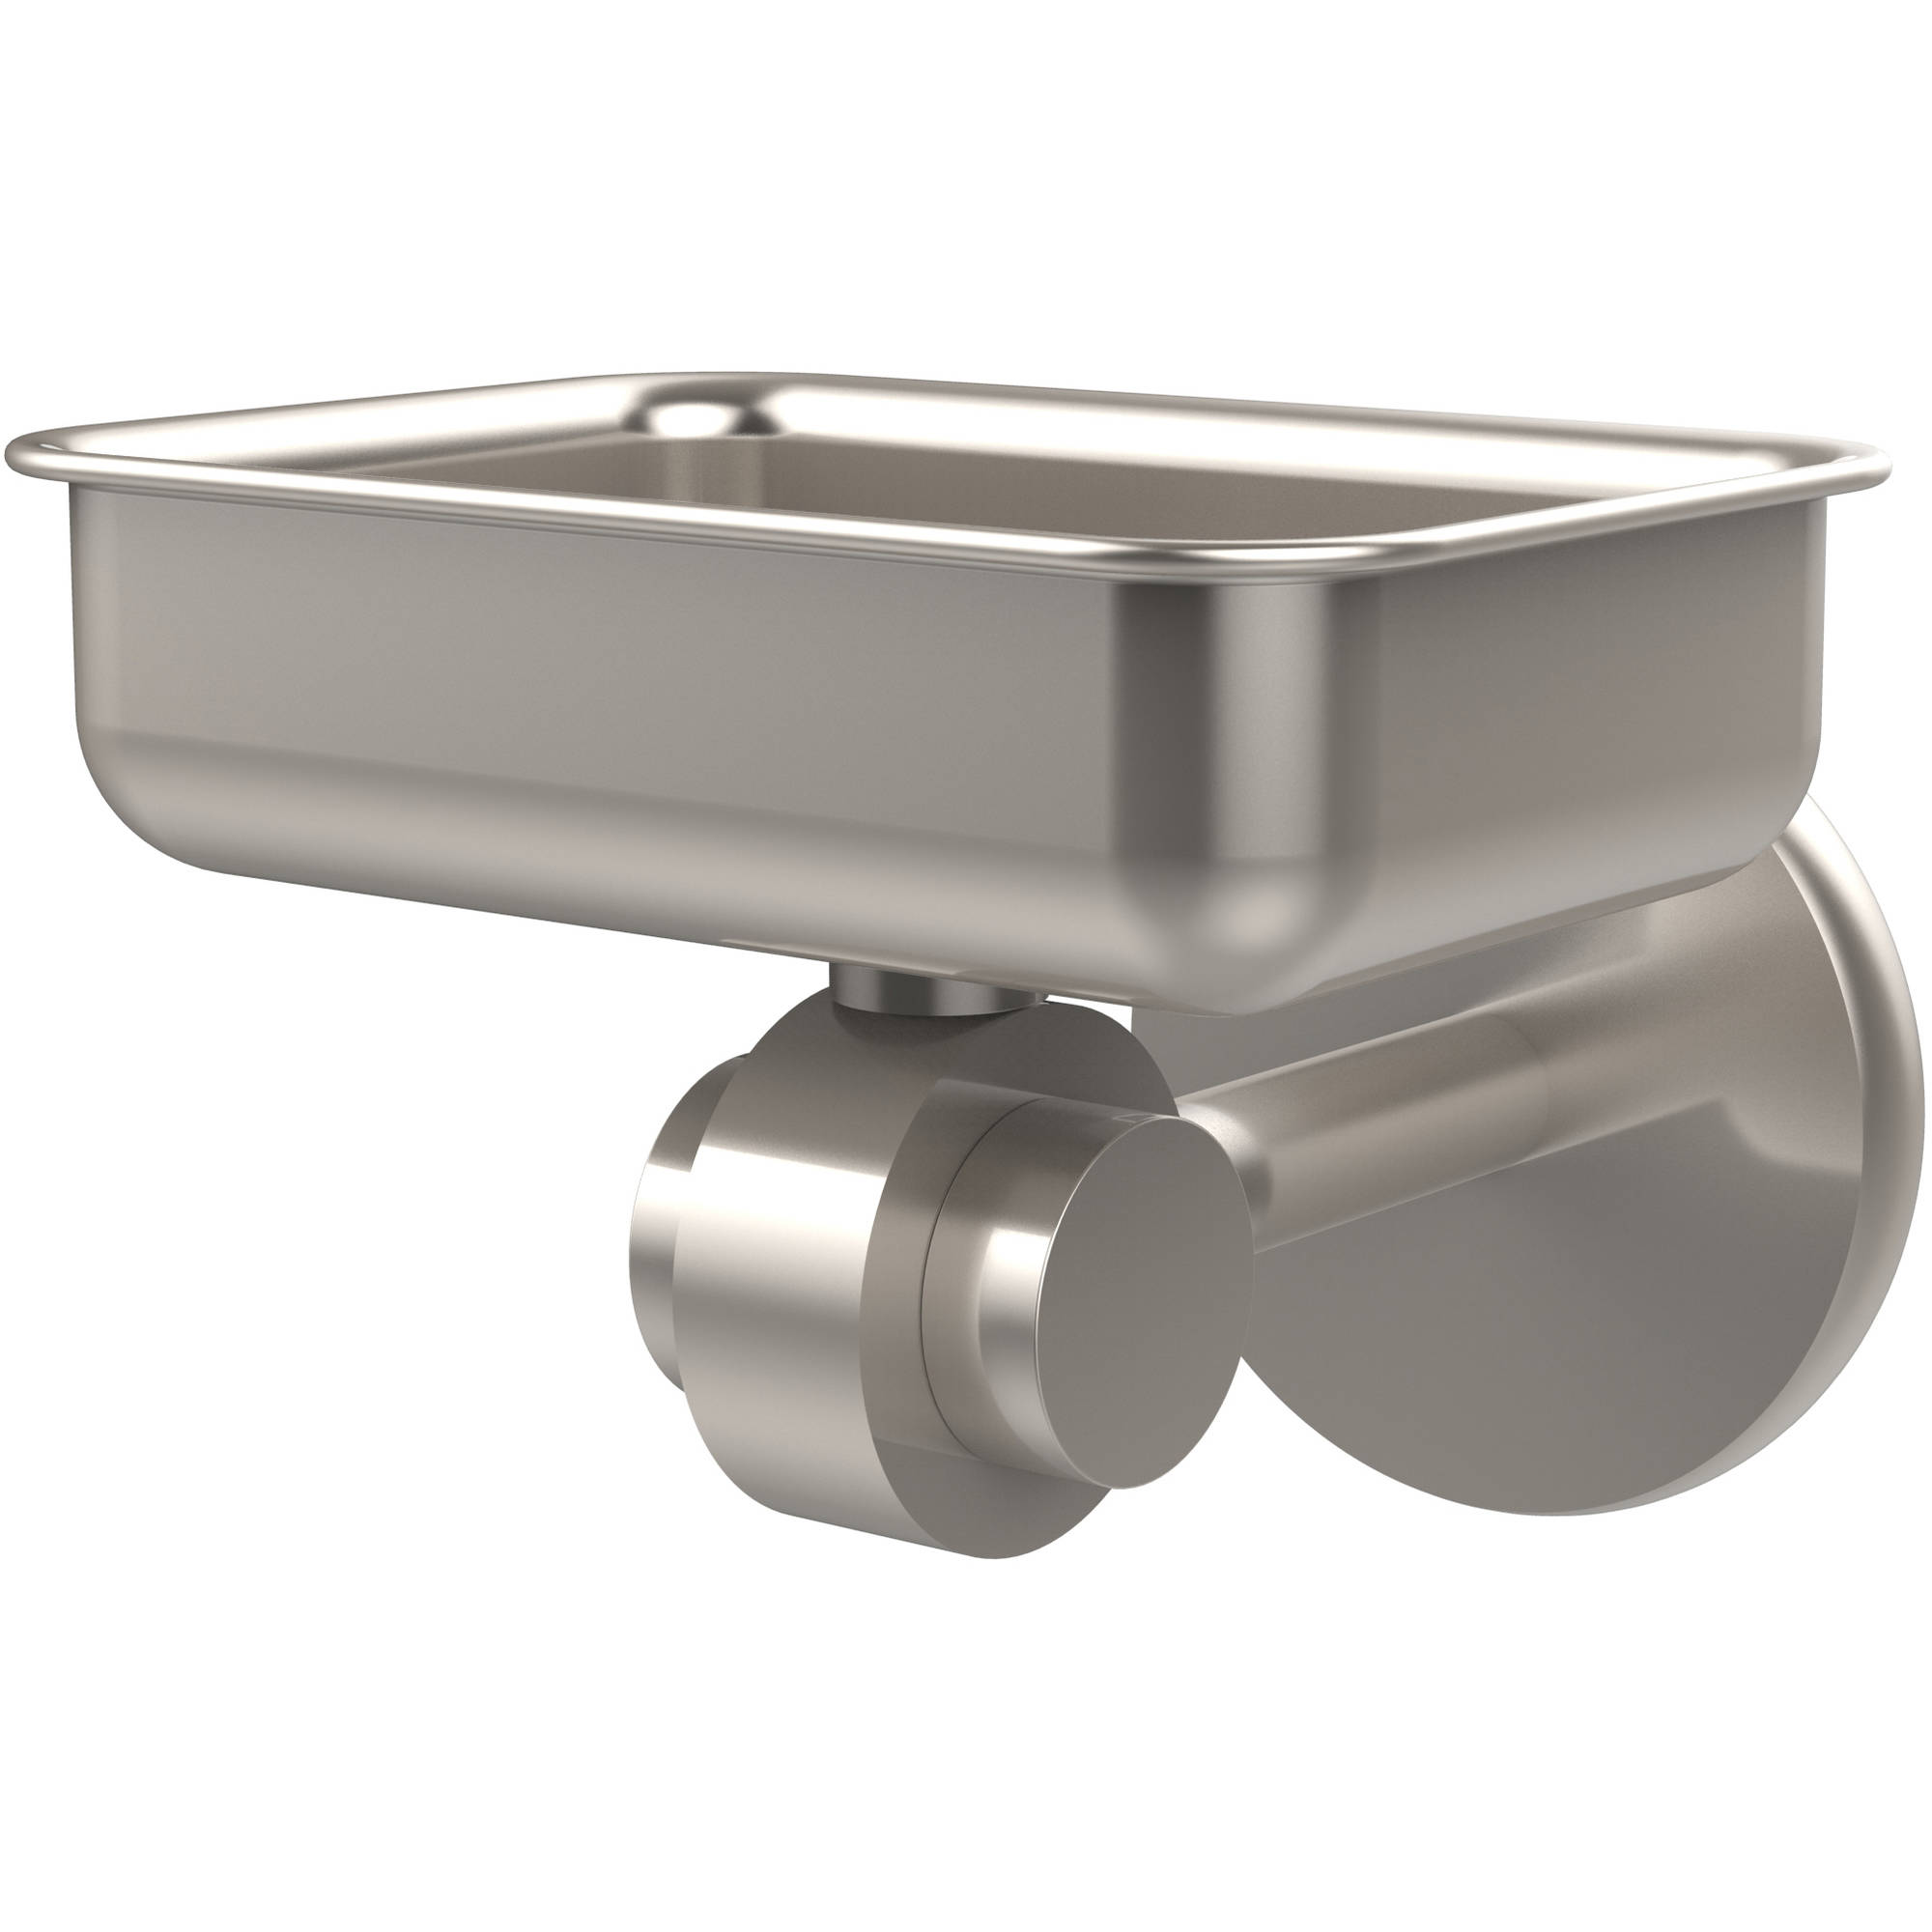 Satellite Orbit Two Collection Wall-Mounted Soap Dish